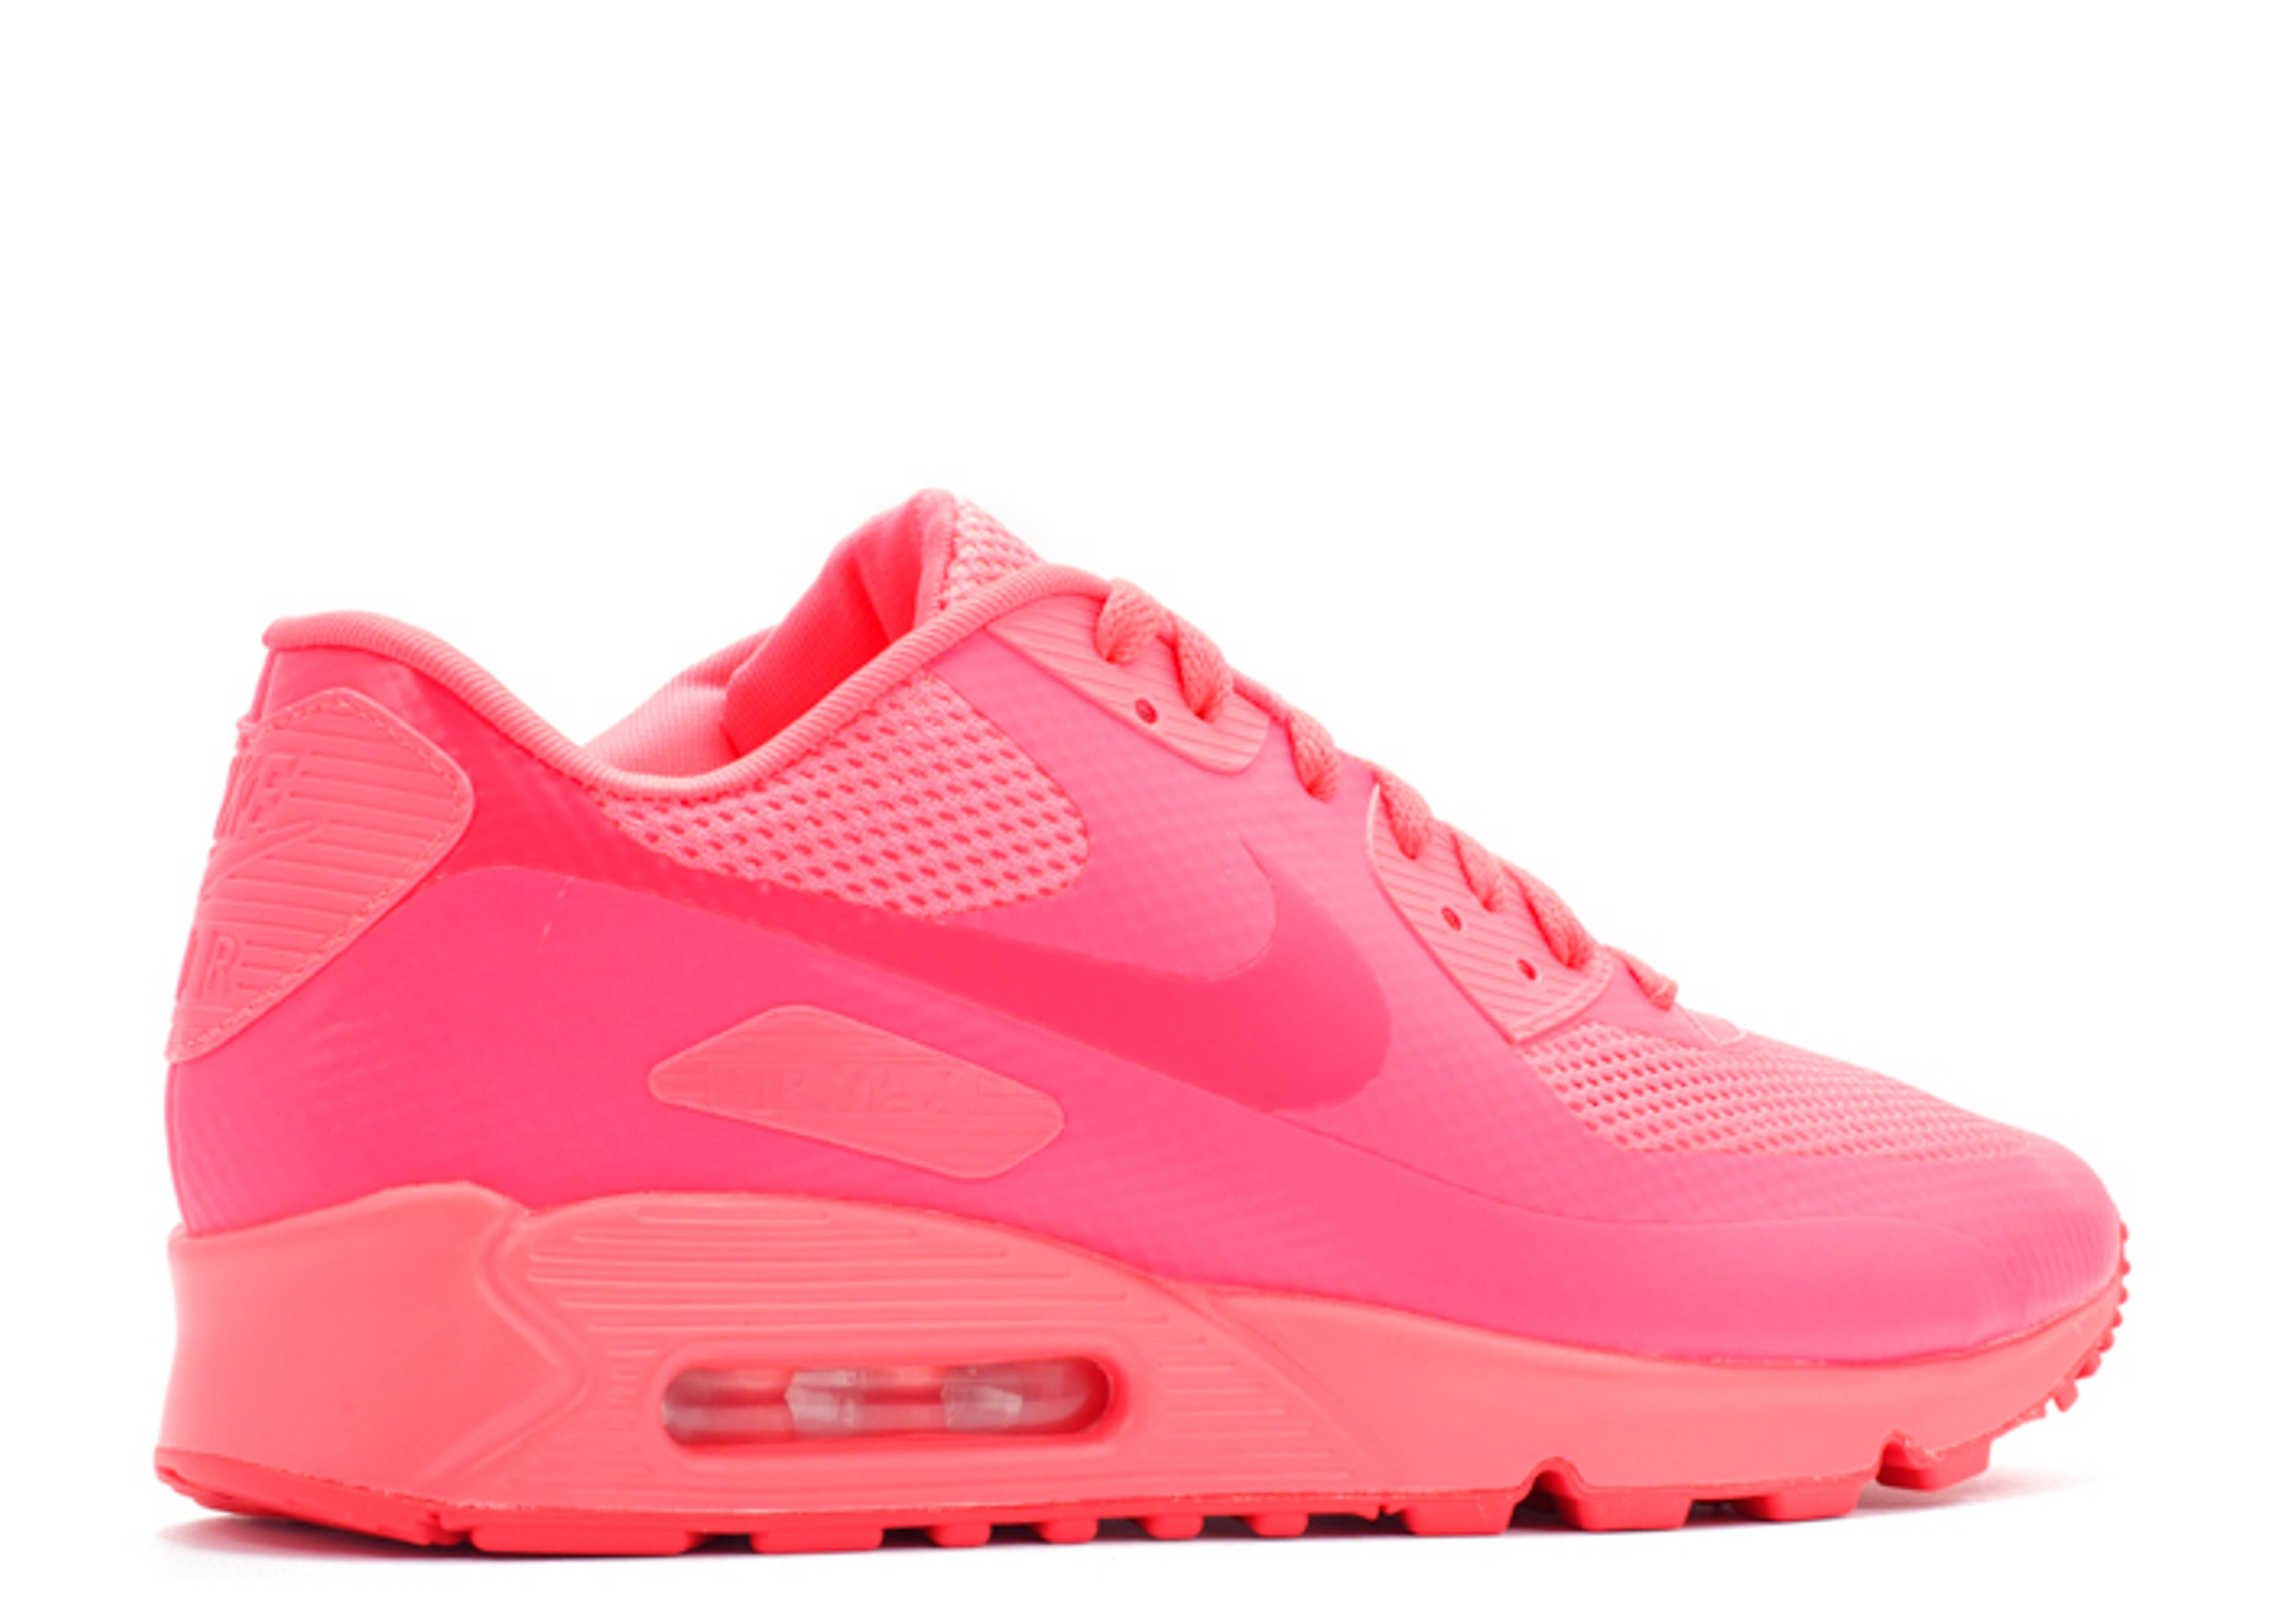 Nike Air Max 90 Hyperfuse Solar Red Reviews & Prices